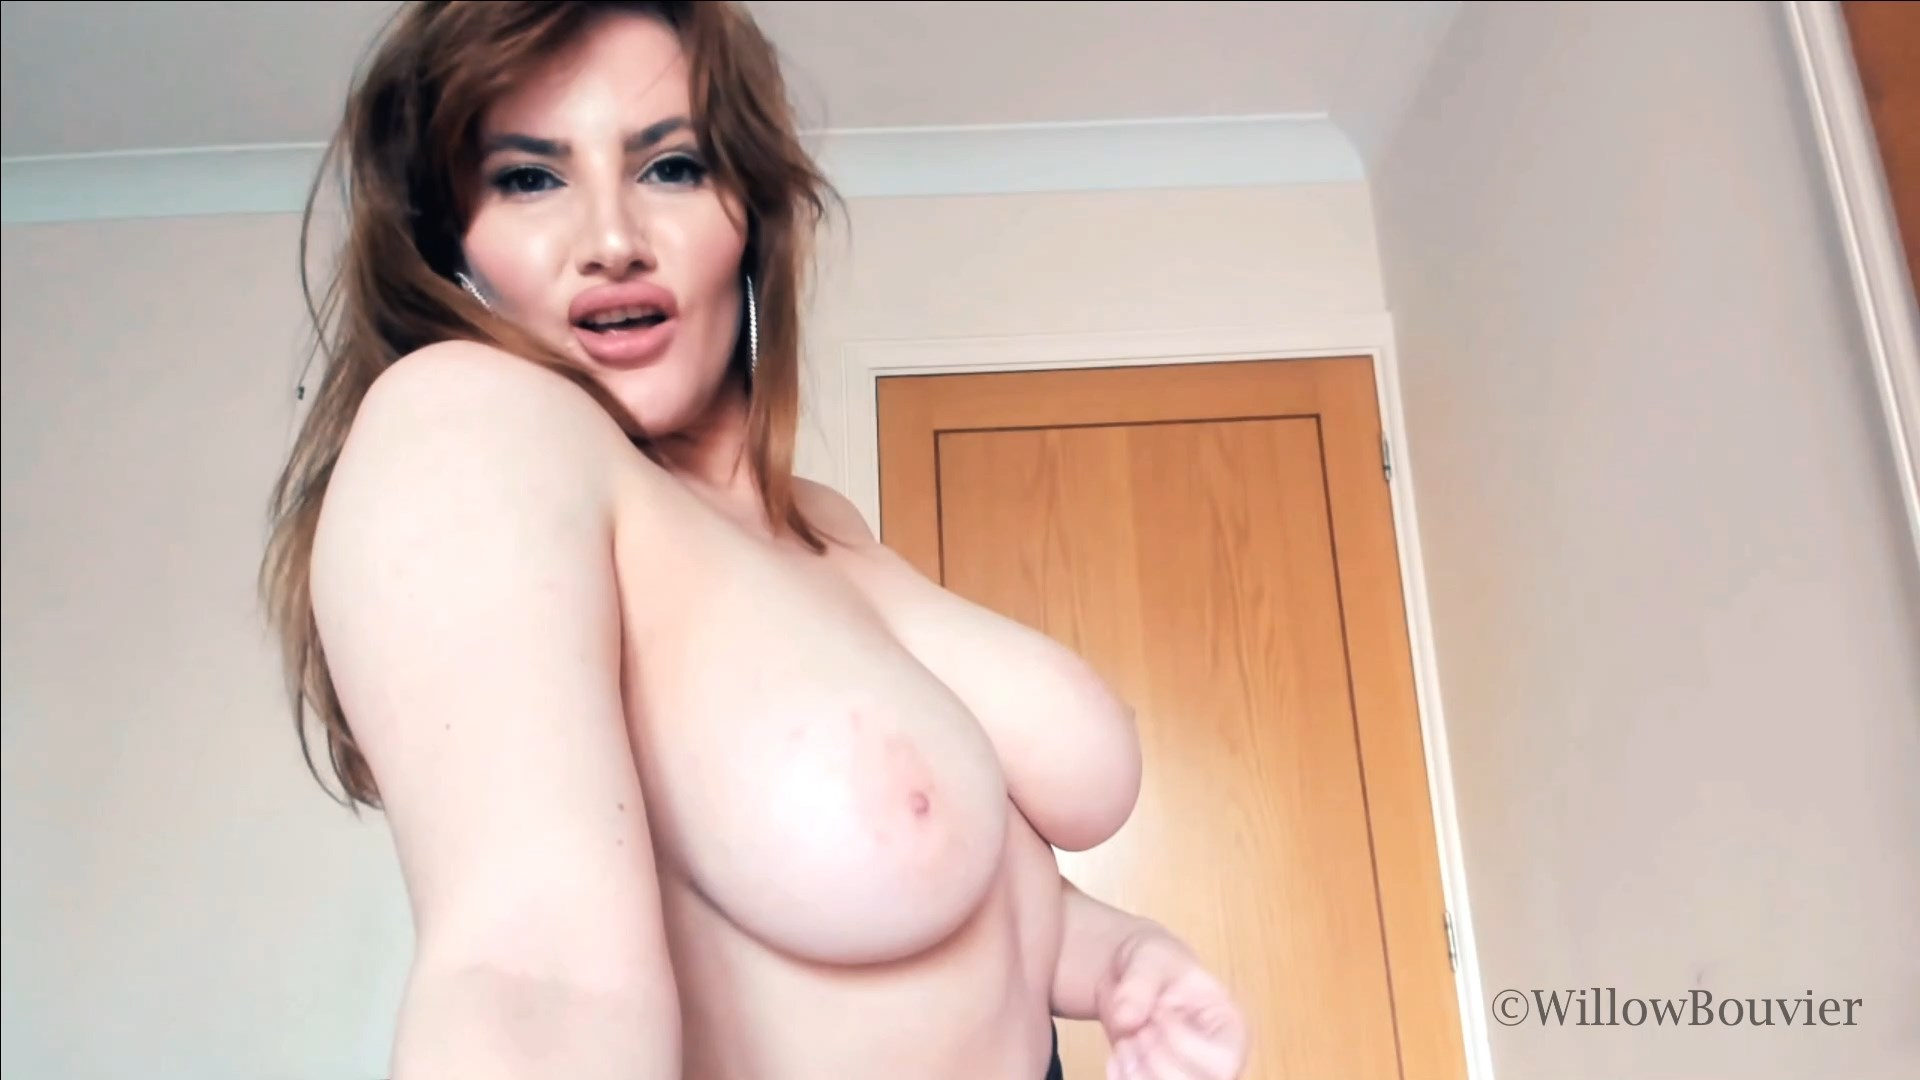 WillowBouvier - Stroke it for Step-Mommy's Tits